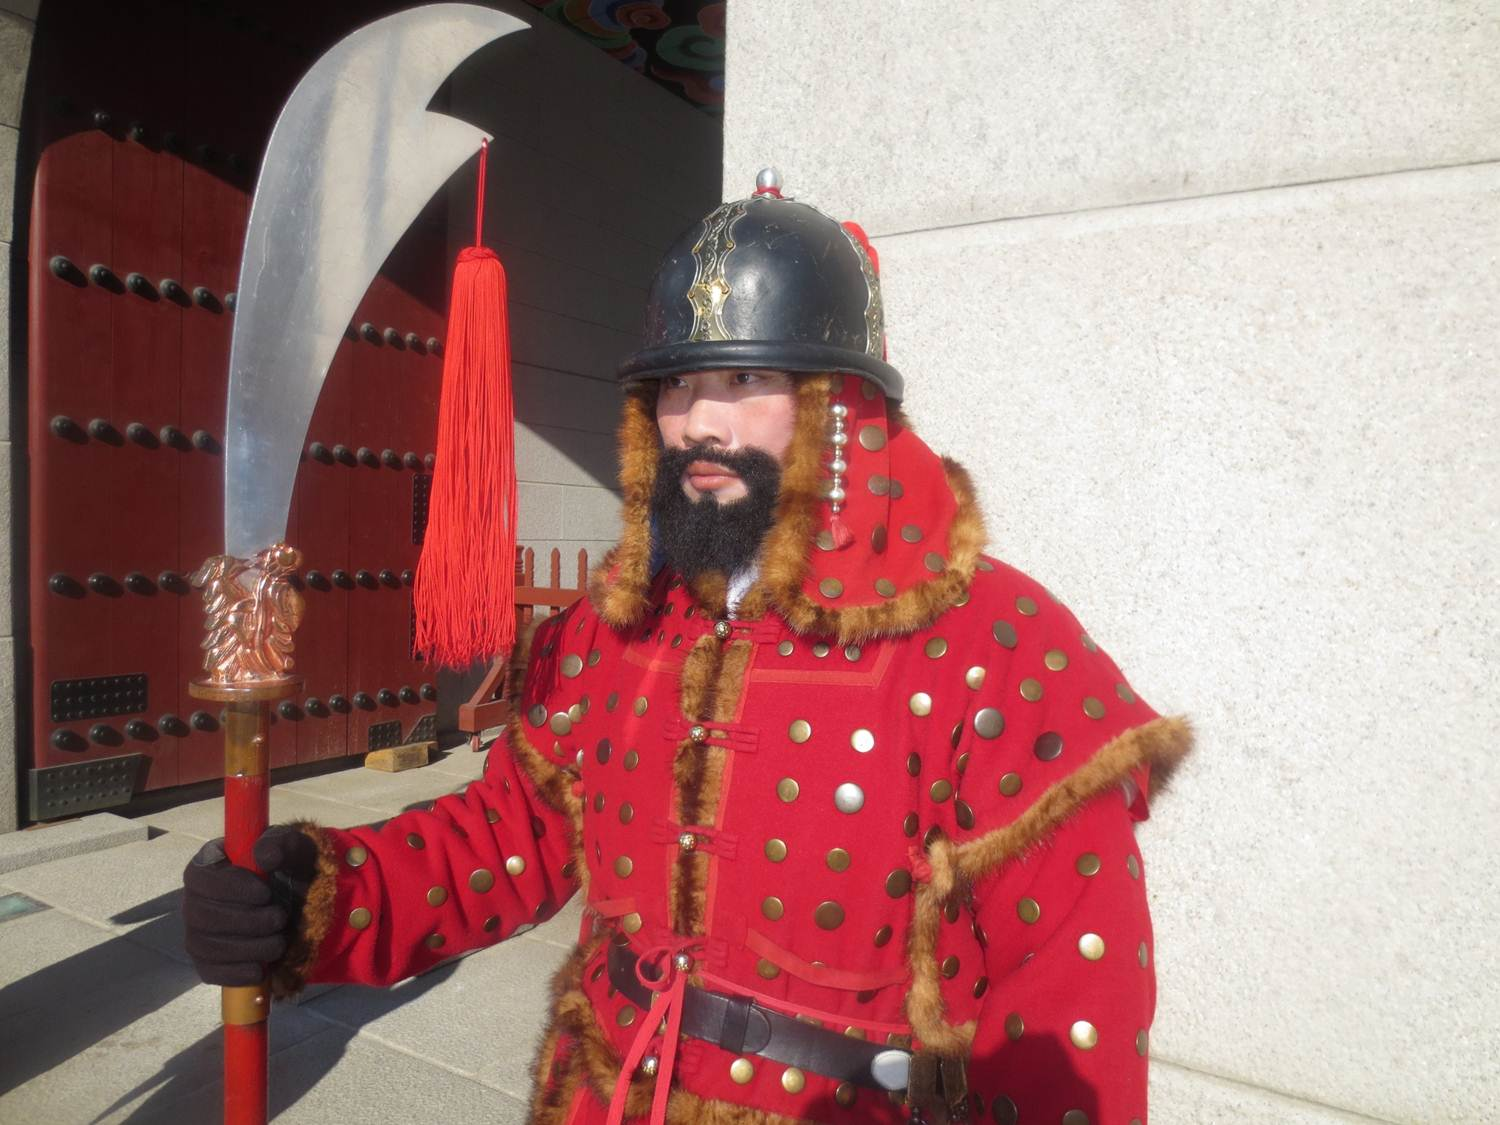 photo essay guarding seoul s royal palace global travel info com gyeongbokgung palace seoul south korea